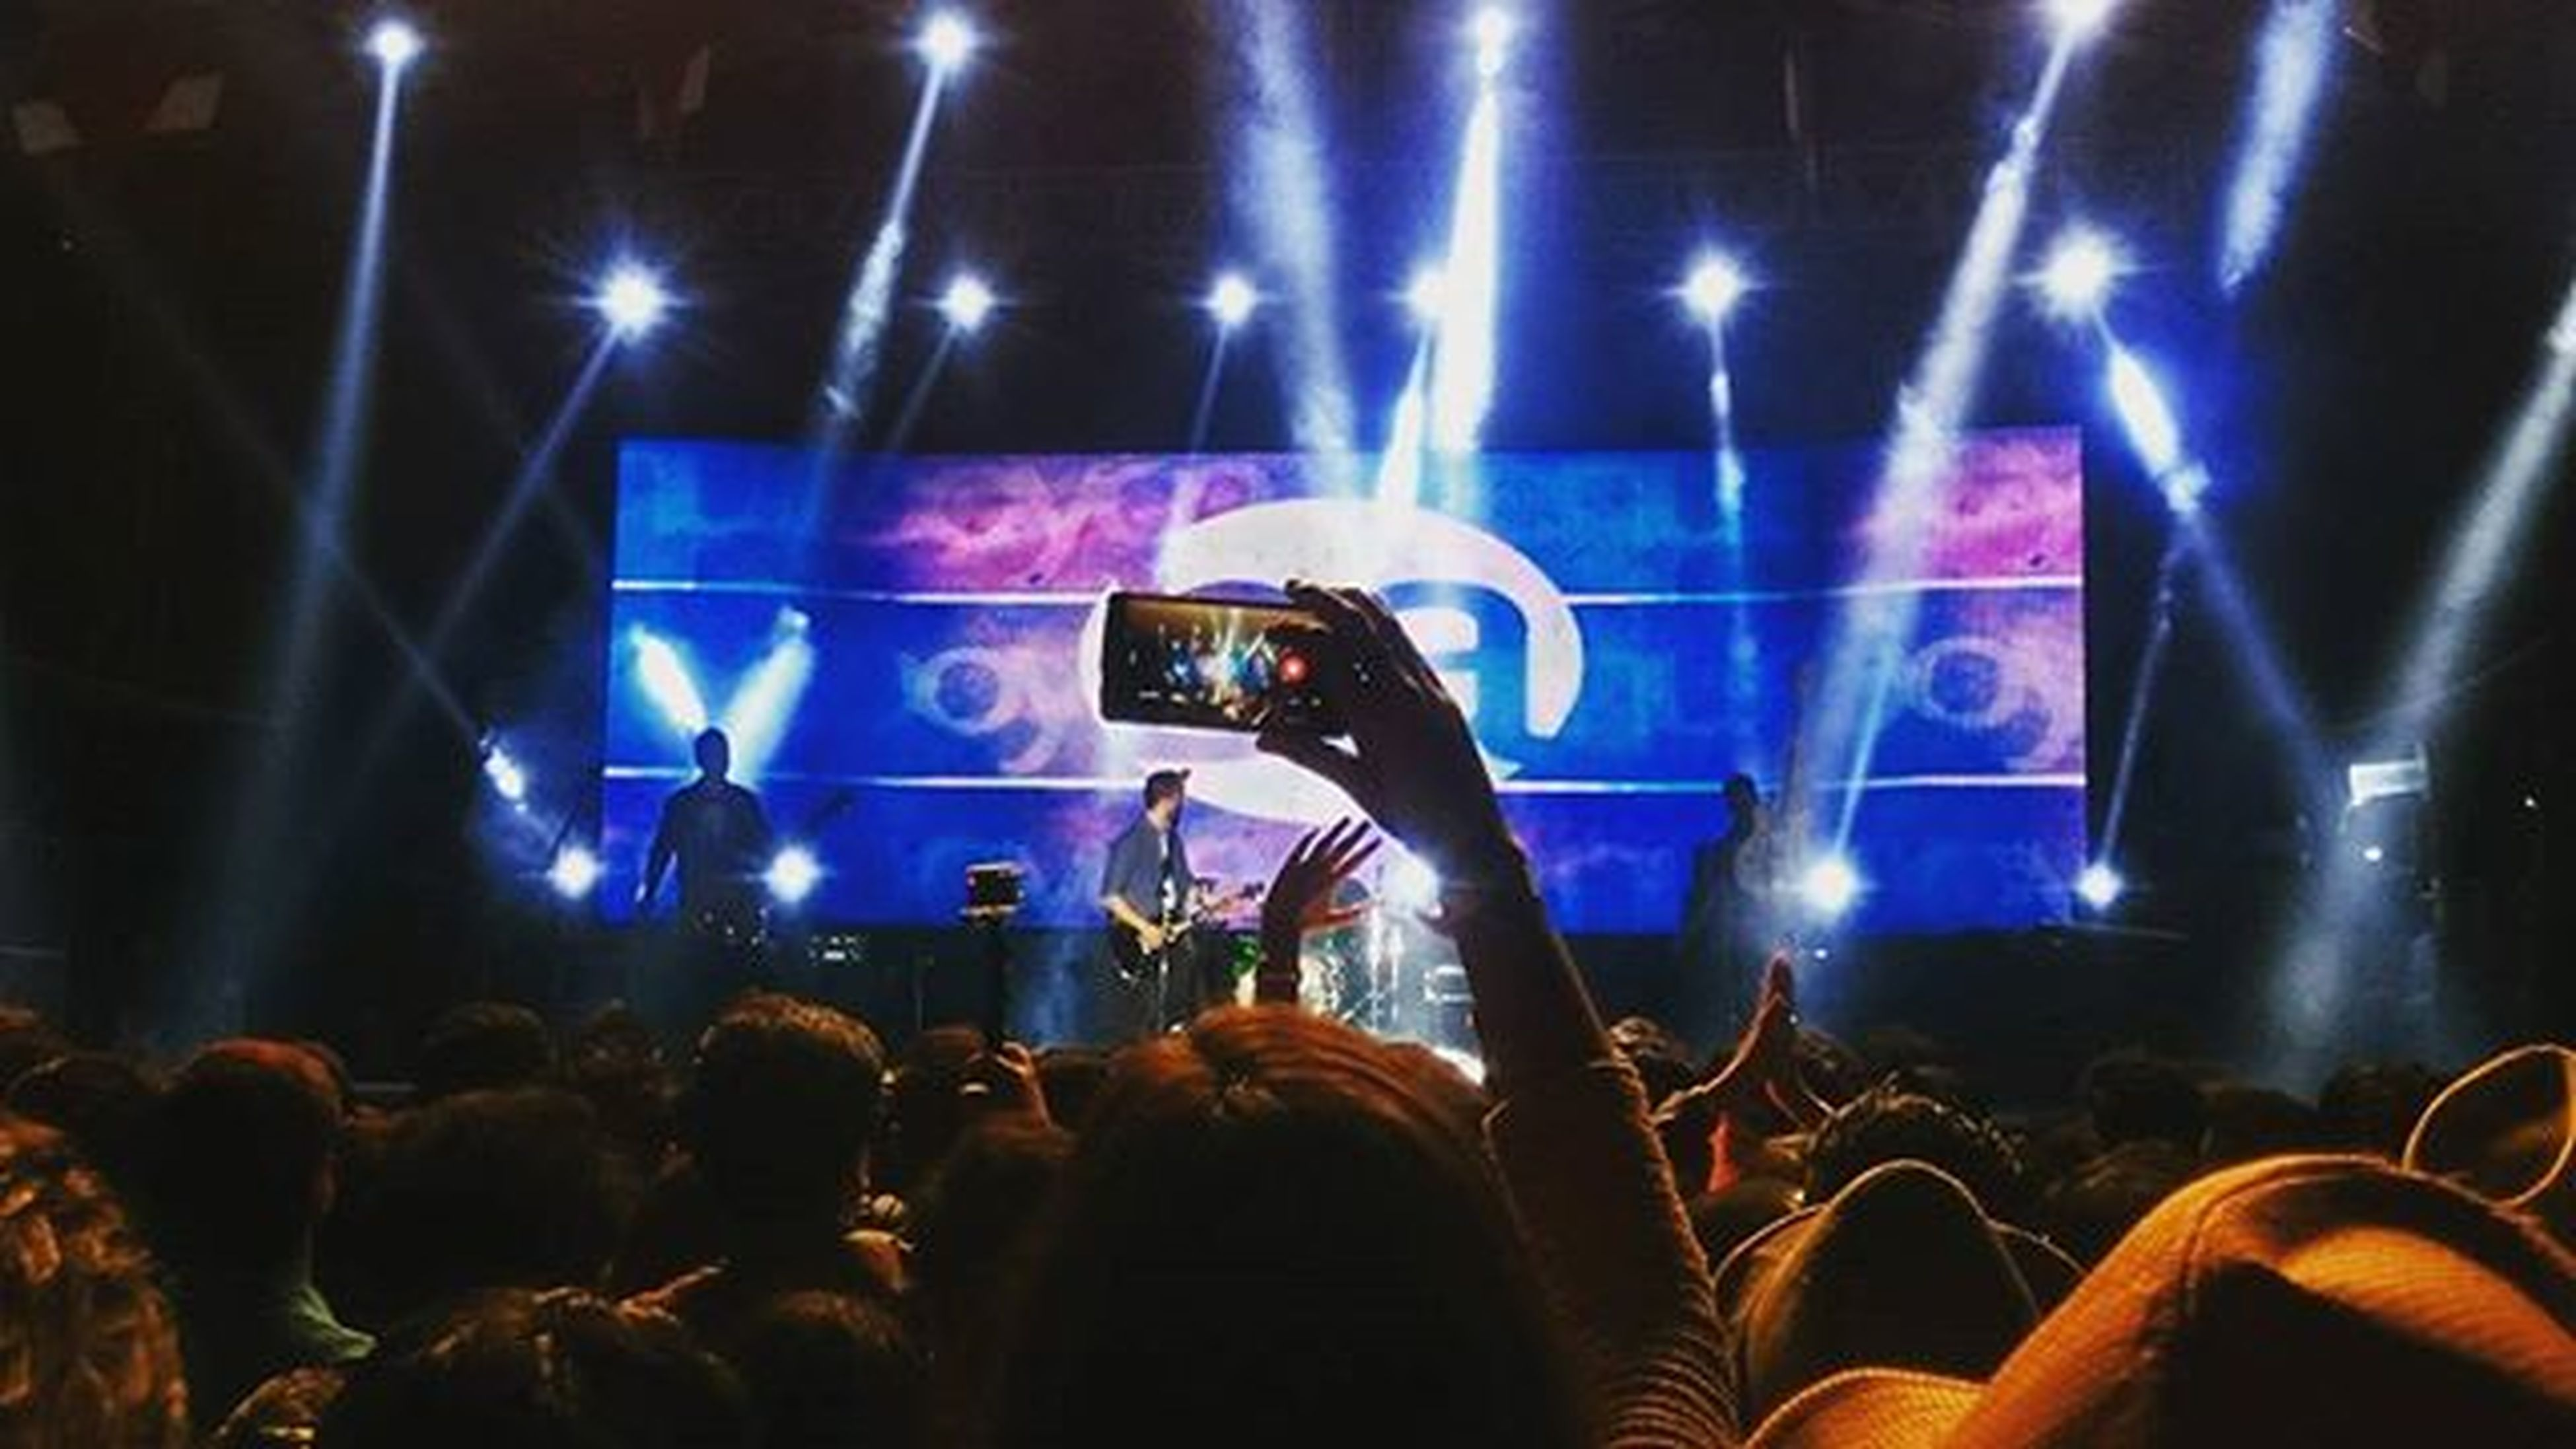 So. This happened tonight. Boyce Avenue. Live. Got to see them live 6 years after stumbling across their music. Totally worth every single rupee. I am happy. :') BoyceavenueinDelhi Boyceavenue BoyceavenueinIndia UAfestival UA Newdelhi India Music Concert Gigphoto Phonecam